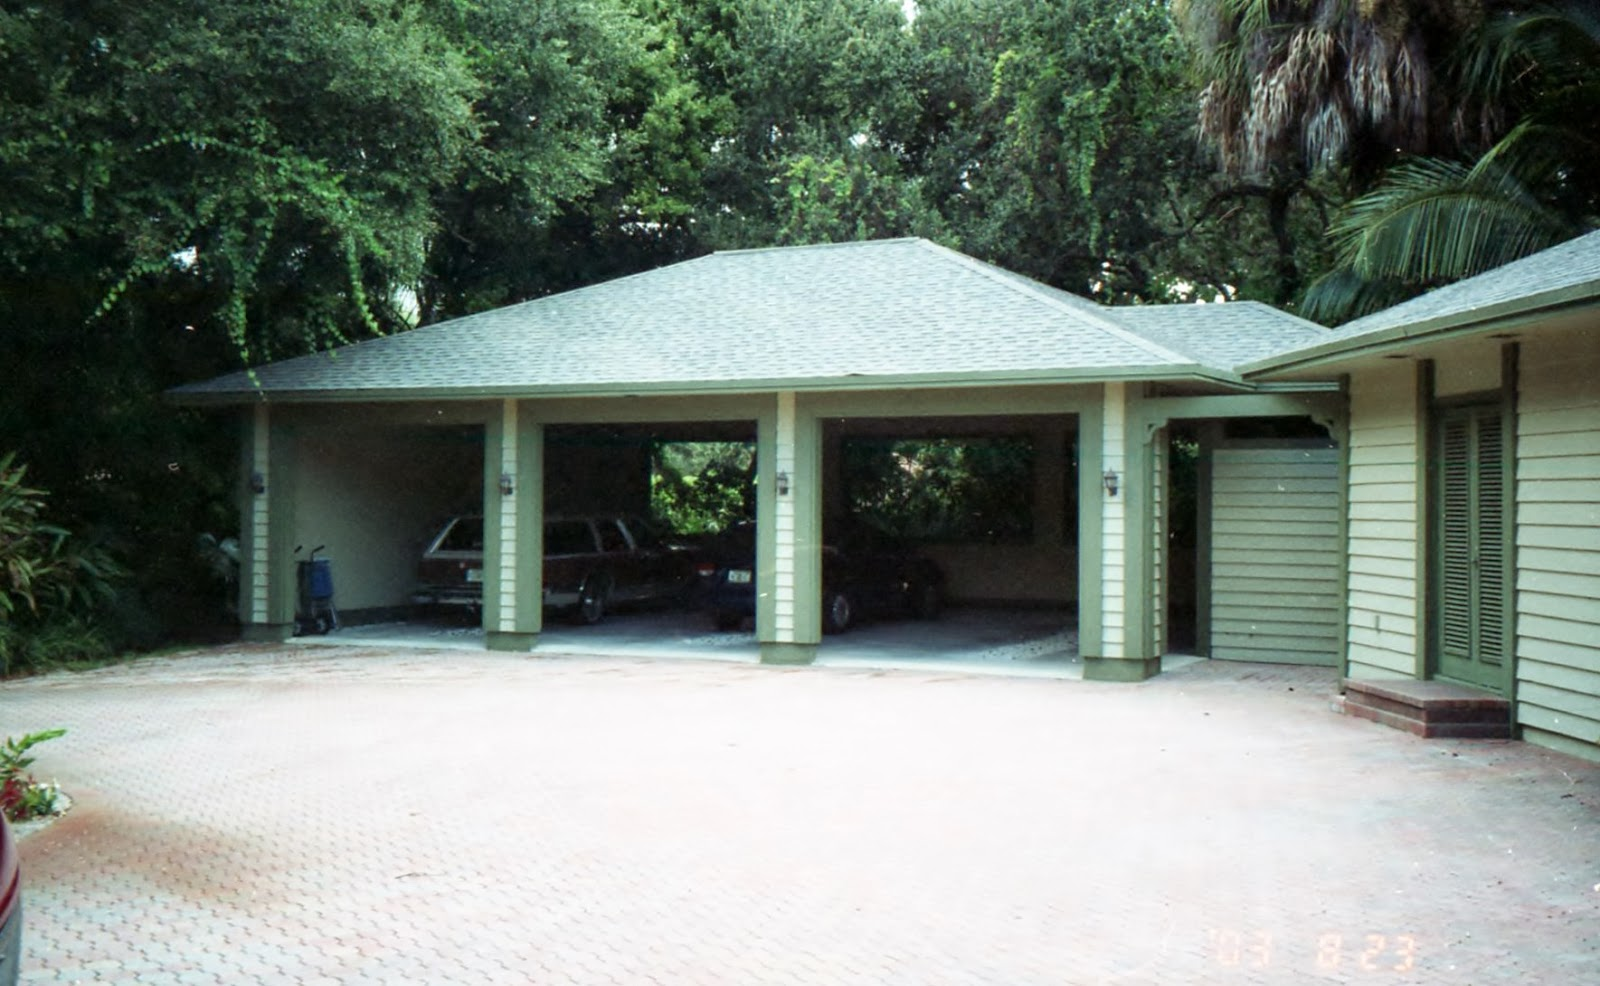 Real modern architect carport addition in vero beach florida for Carport additions